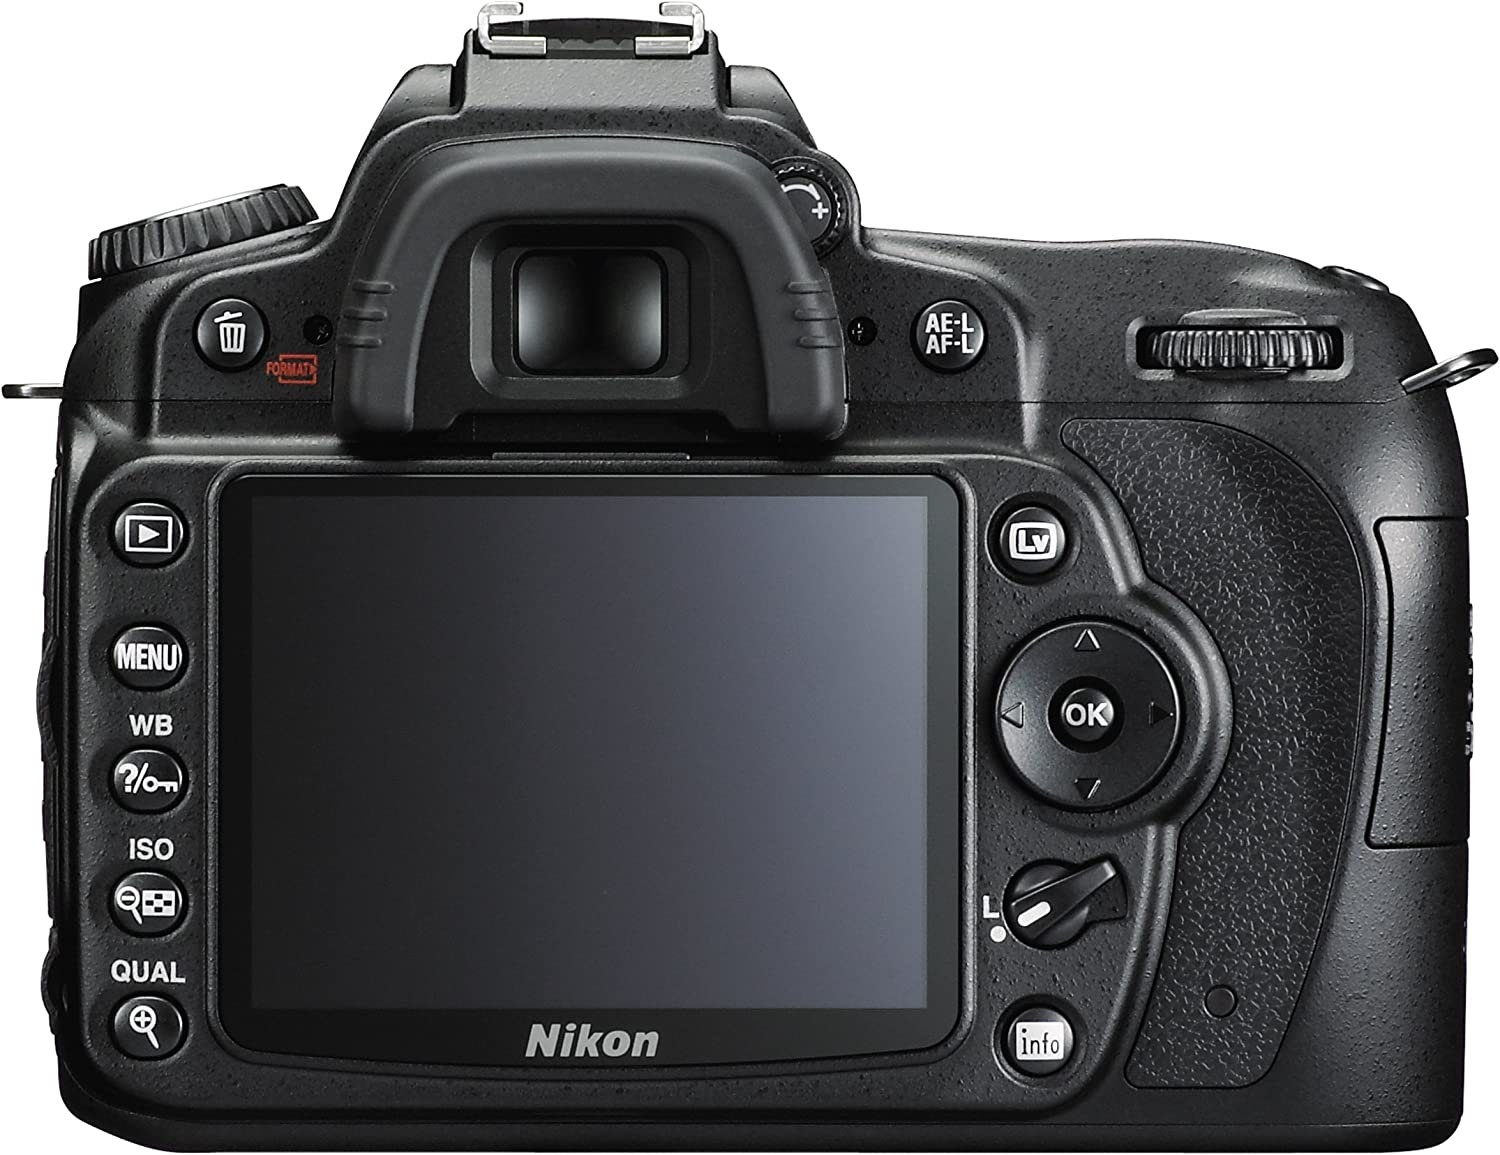 Nikon D90 + AF-S DX NIKKOR 16-85mm 12.9MP CMOS 4288 x 2848Pixeles ...